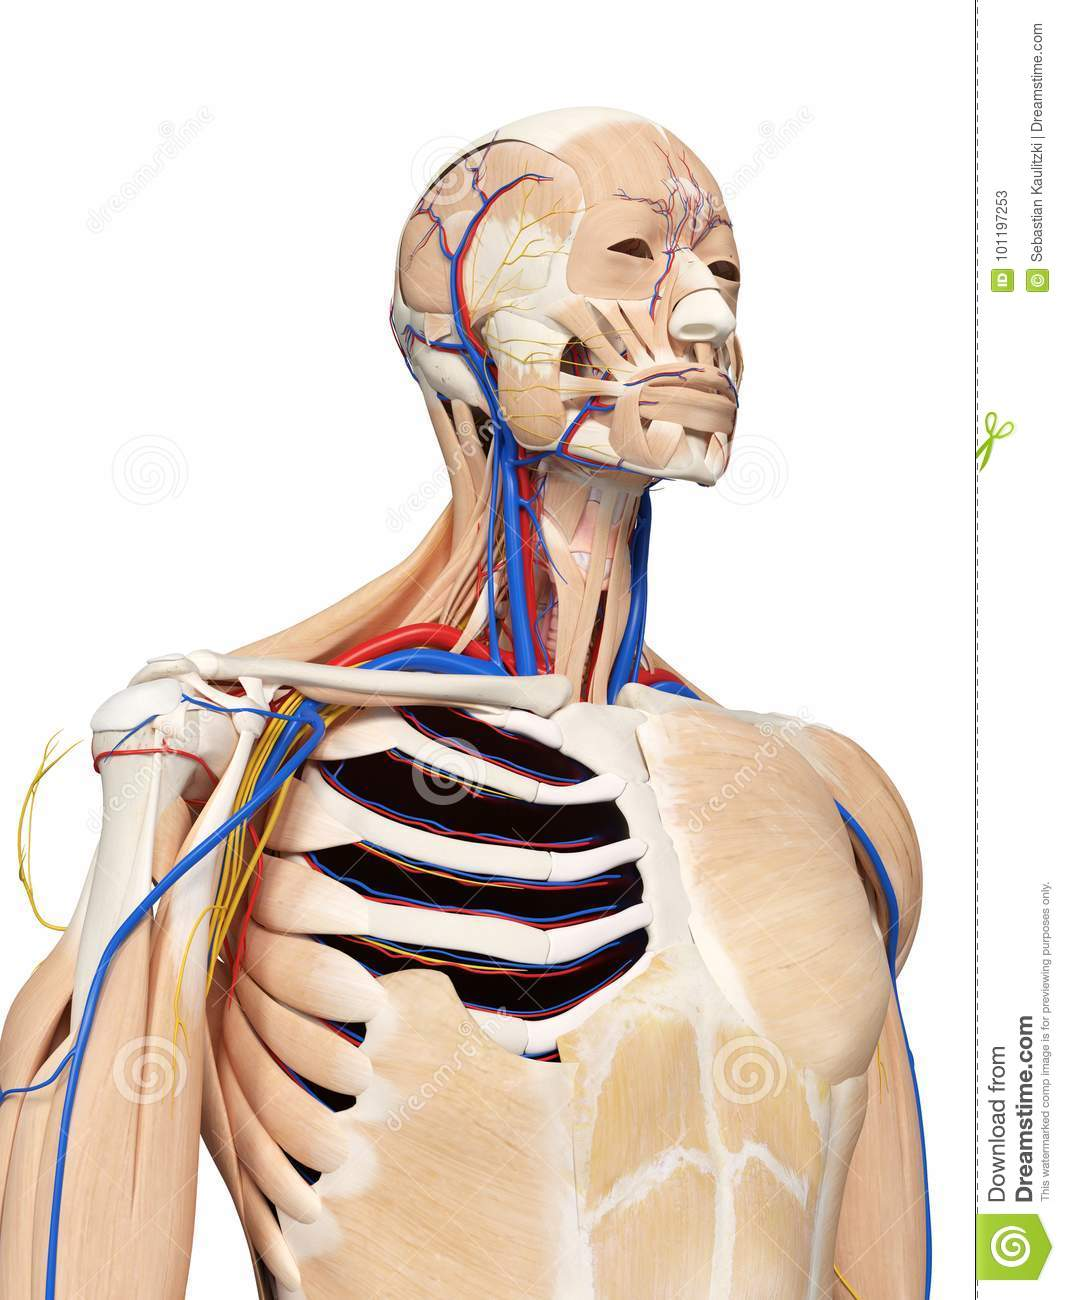 The head and neck anatomy stock illustration. Illustration of.